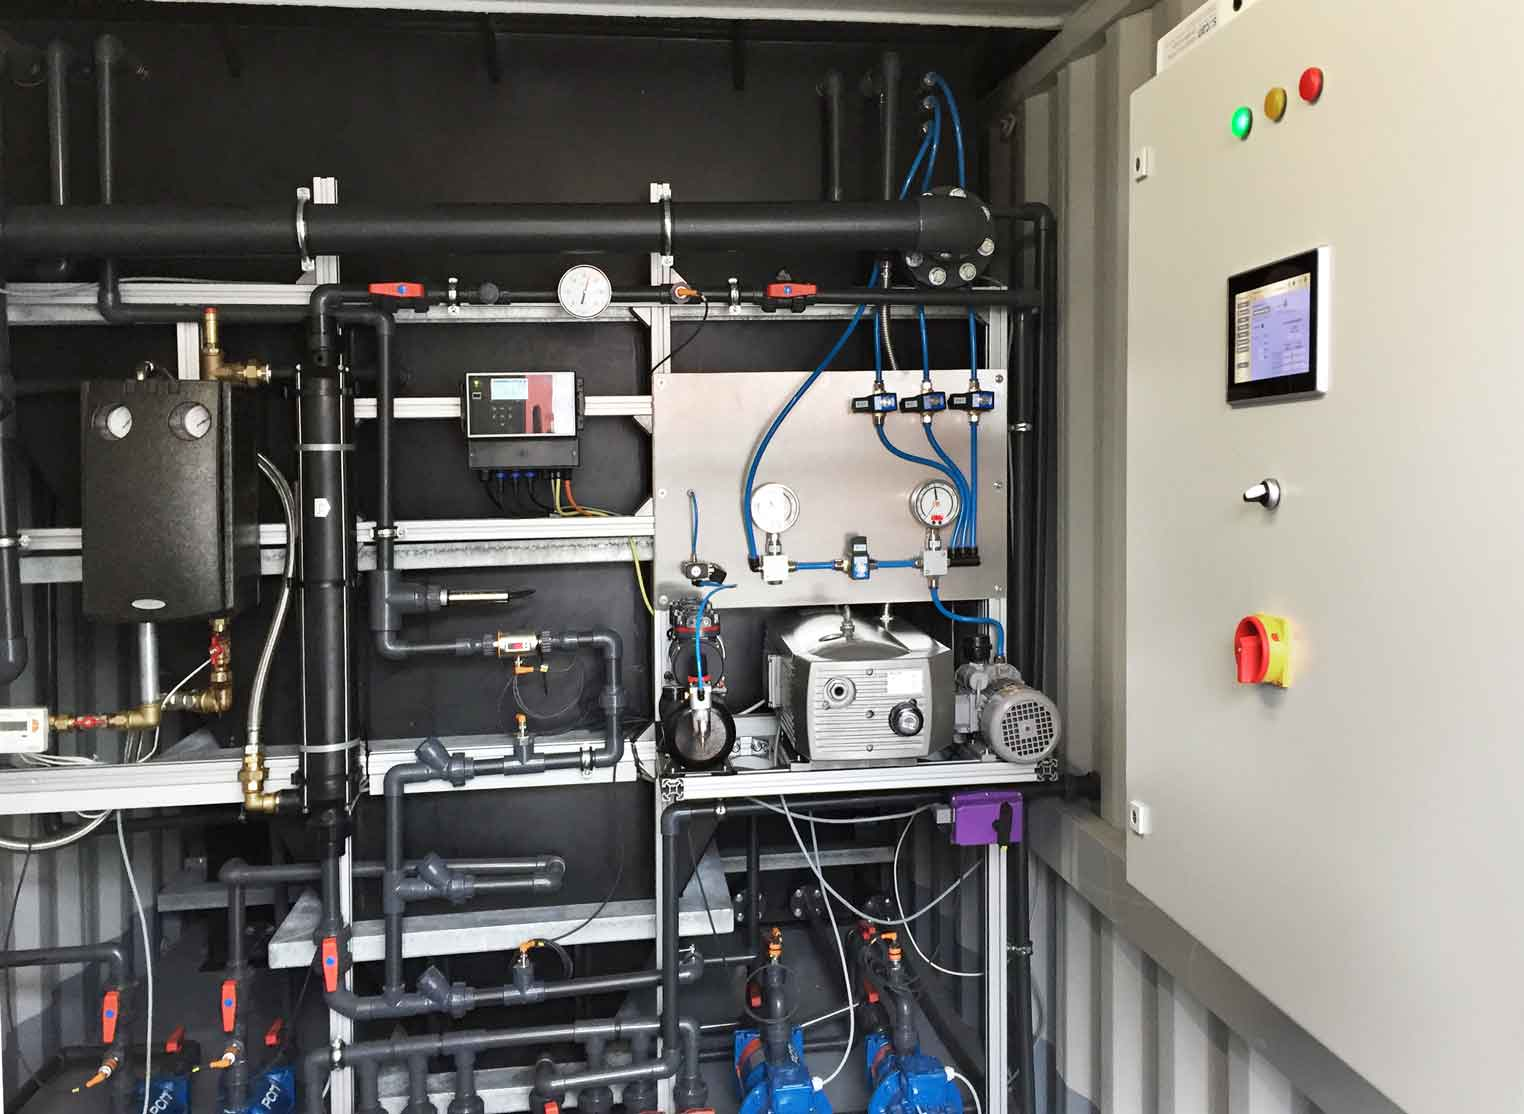 a technical room from a container system from the inside